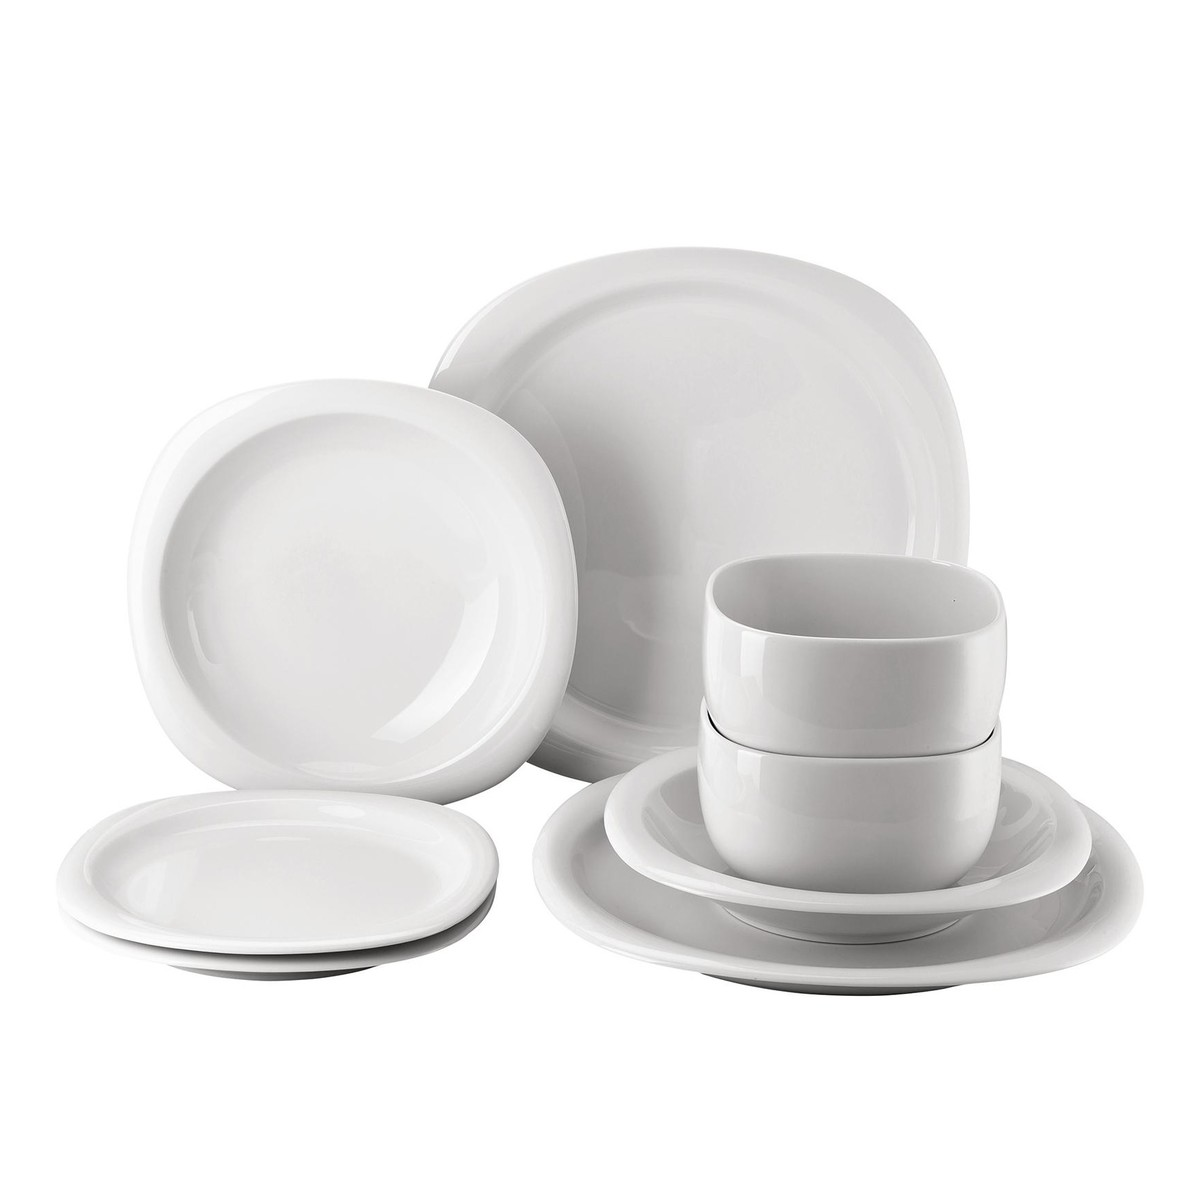 rosenthal suomi assiette plate 20cm rosenthal timo. Black Bedroom Furniture Sets. Home Design Ideas